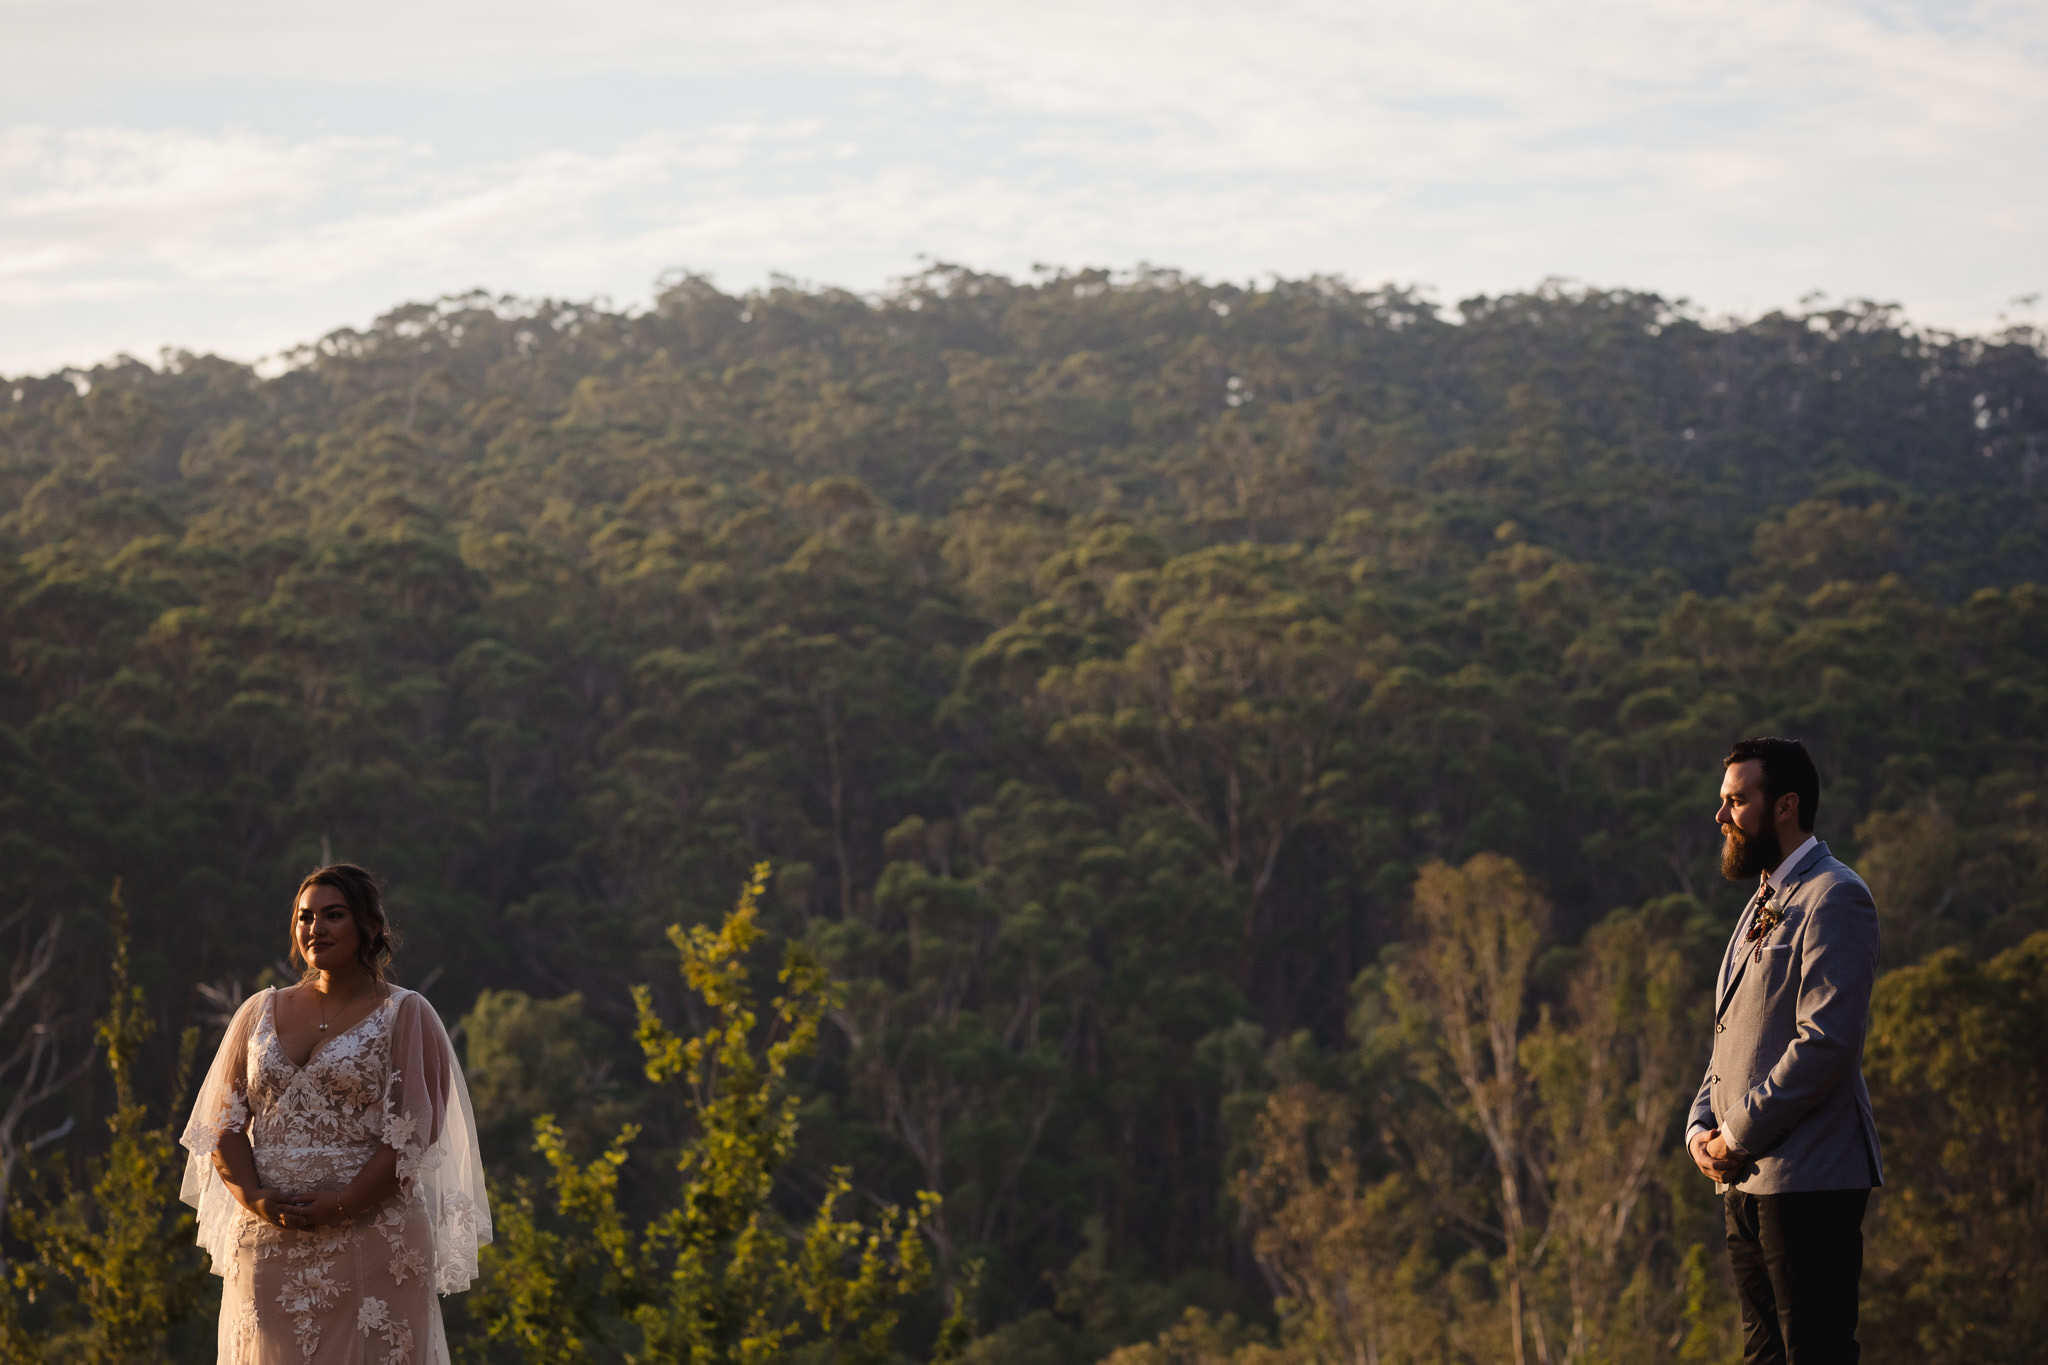 Bride and groom standing apart from each other at sunset at Stonebarn Lodge in Pemberton on their wedding day with karri forest in the background behind them